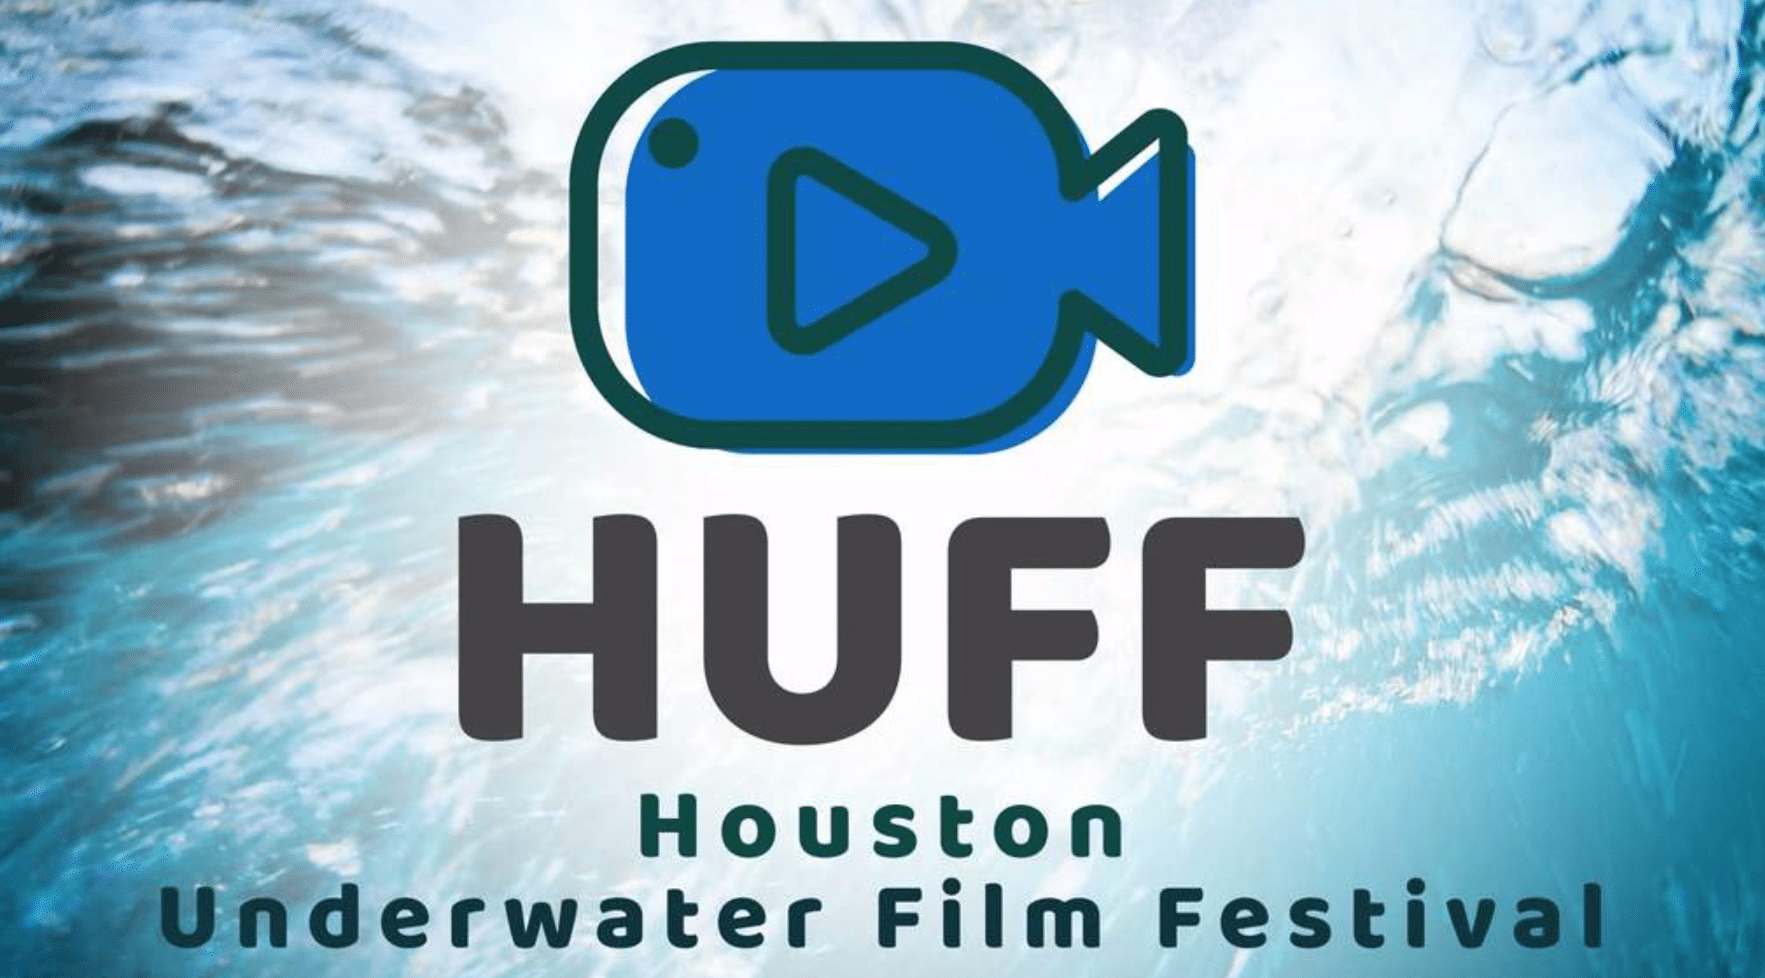 Houston Underwater Film Festival